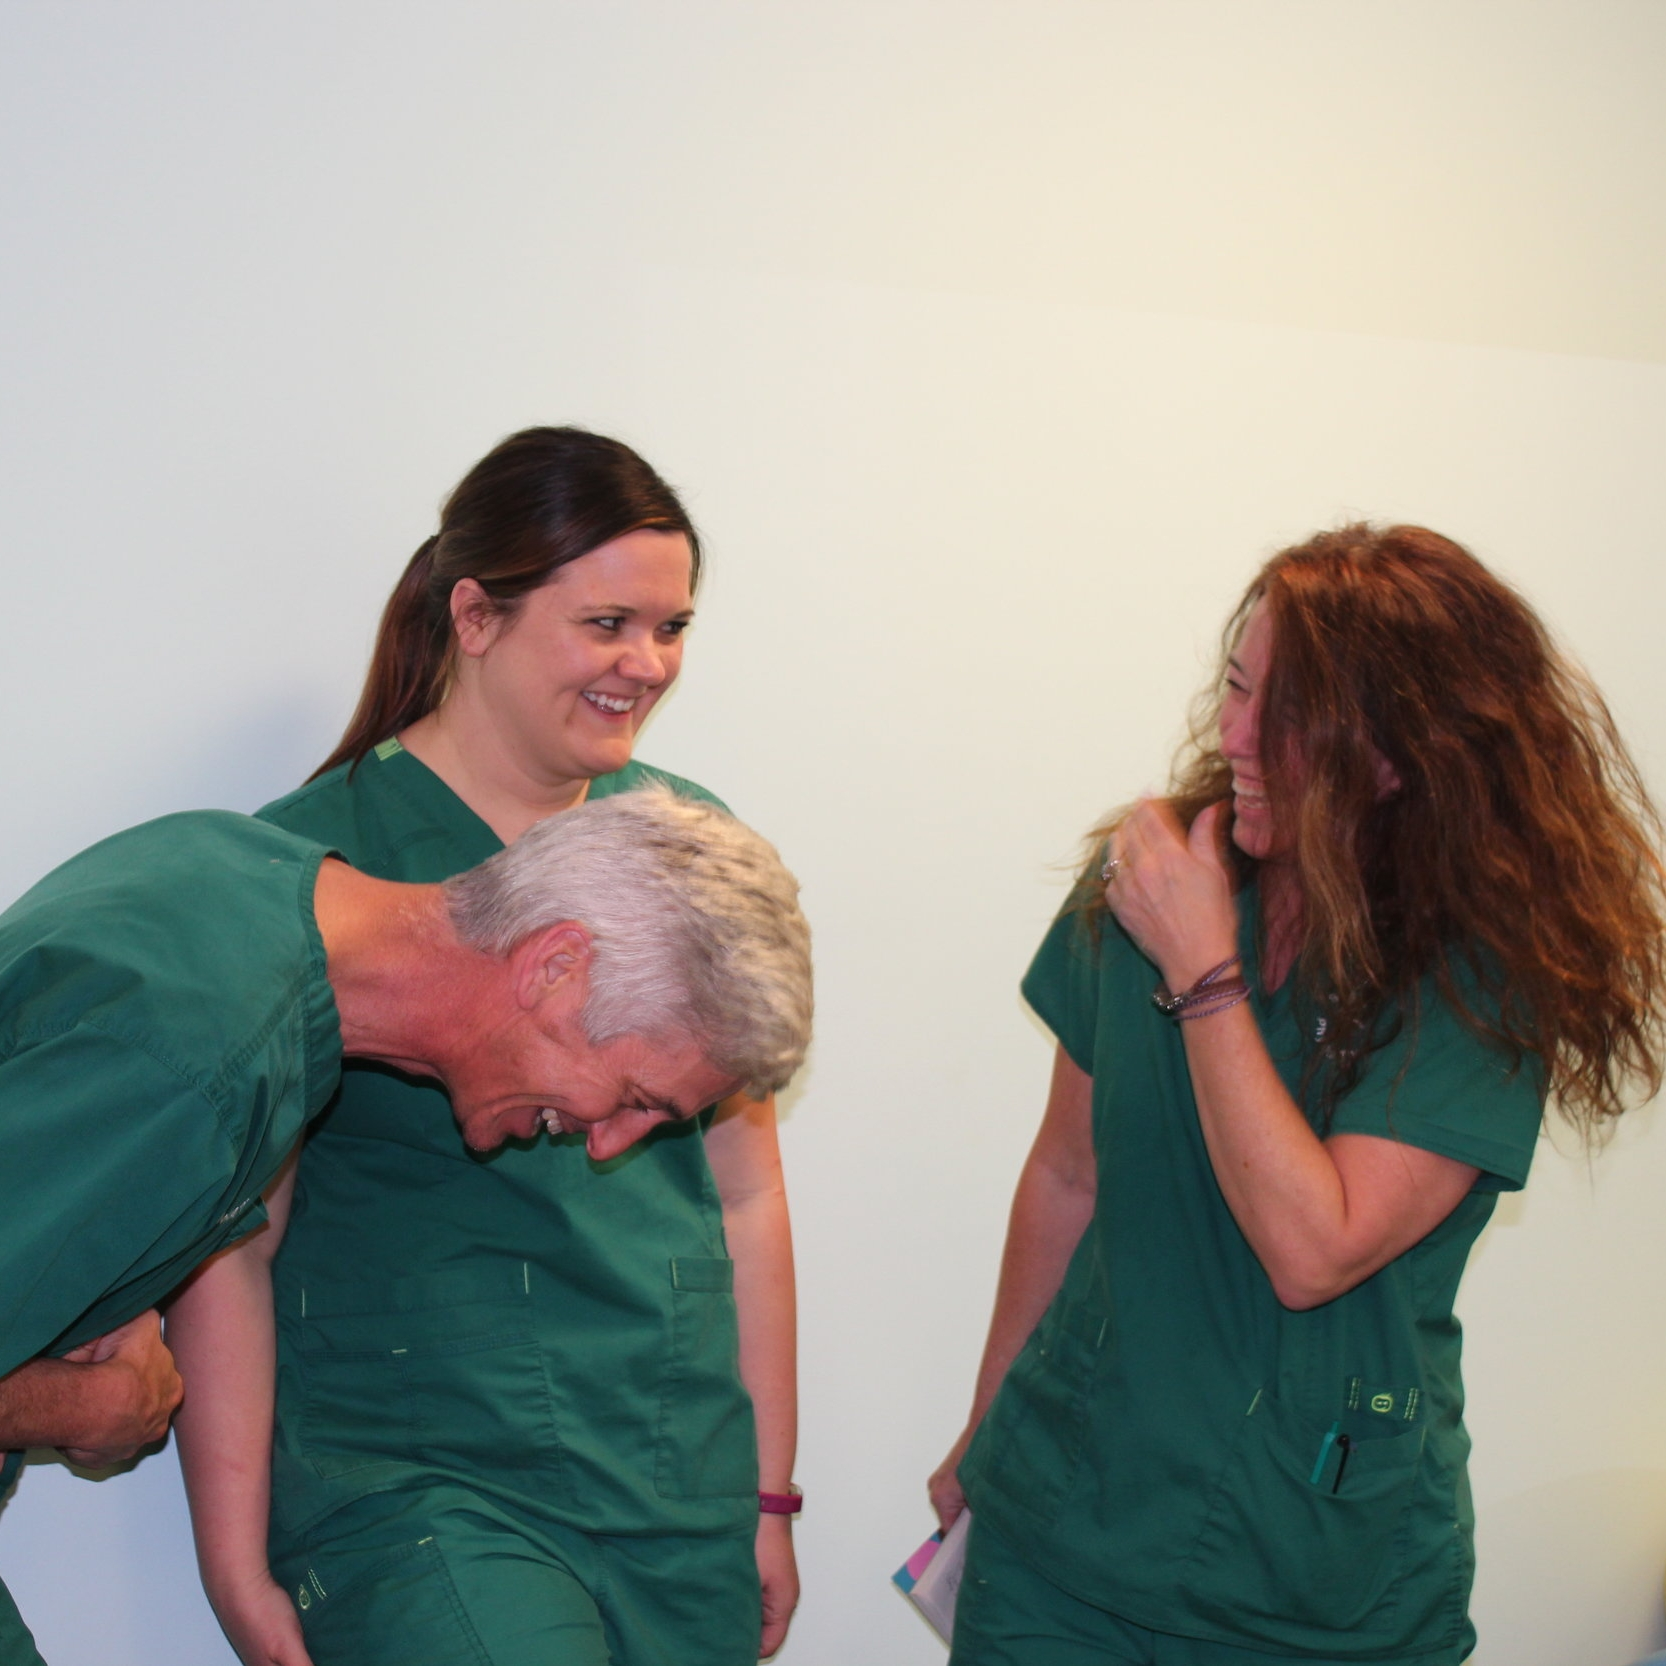 LAUGHTER - We really believe that laughter is the best medicine. We want to cultivate an atmosphere of fun in our clinic so we laugh as often as we can and we bet you'll join in as well!